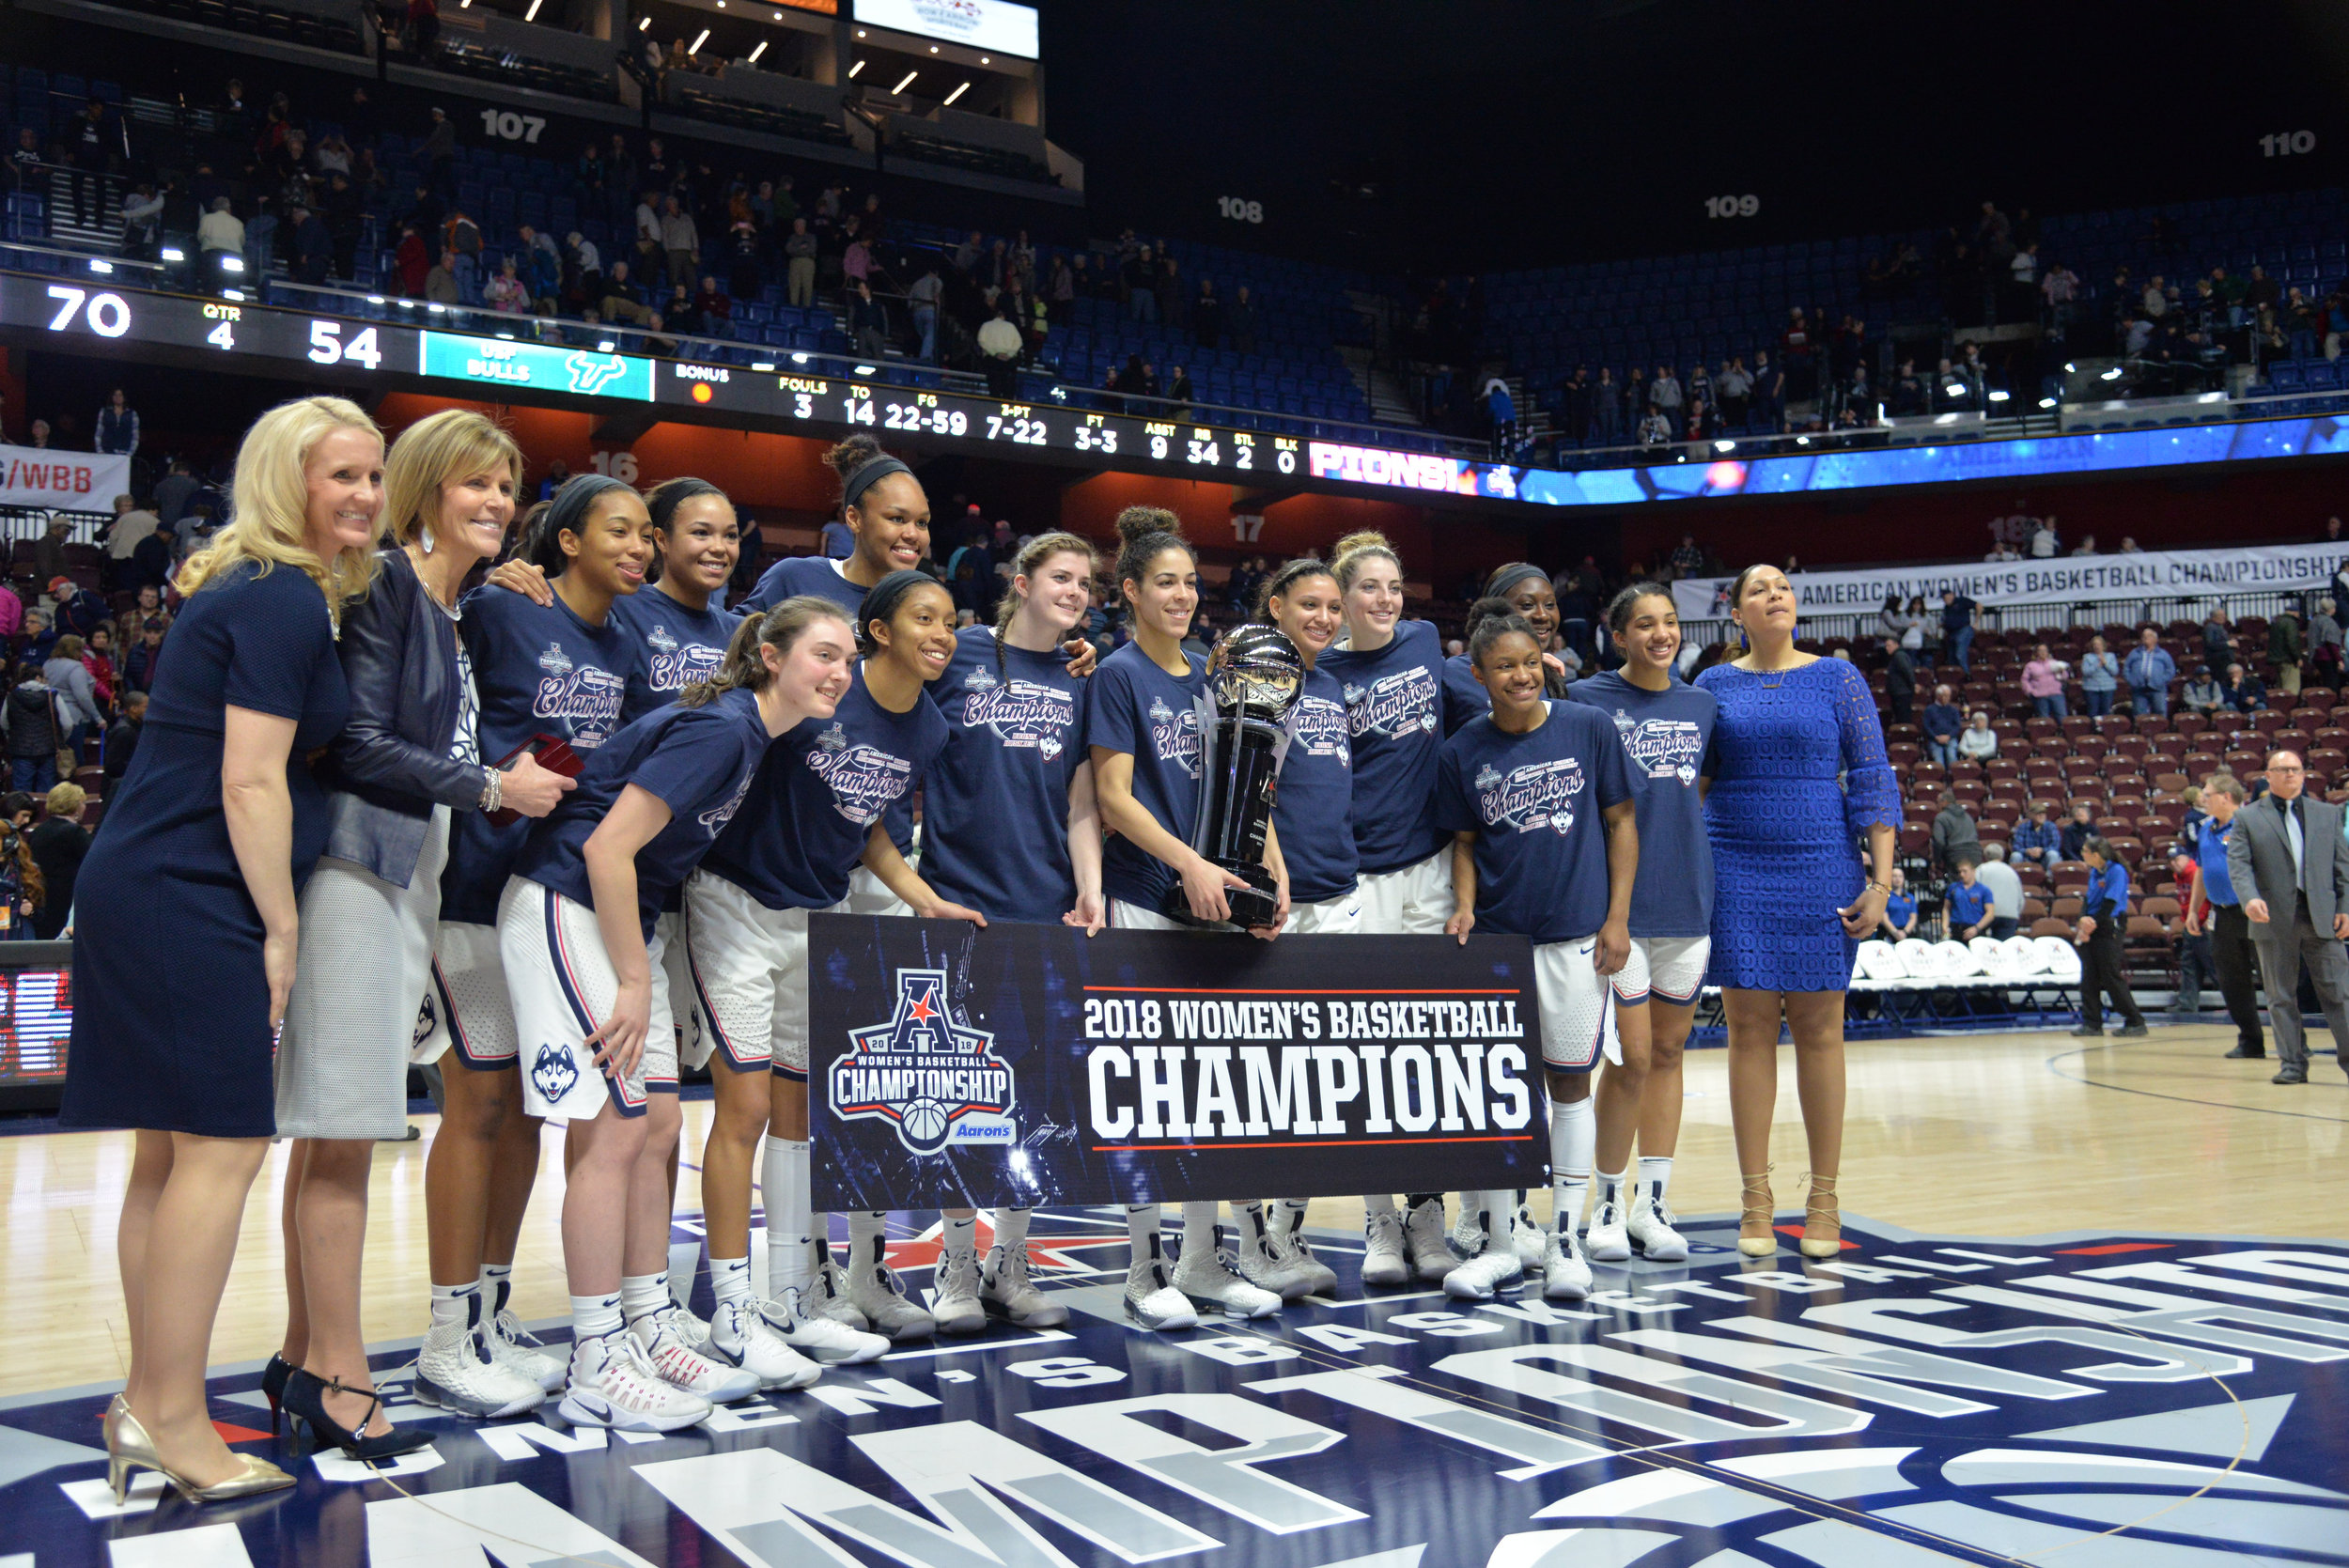 To win the American Athletic Conference Championship, the UConn women's basketball team had to play USF in the final for the fourth consecutive season. (Amar Batra/The Daily Campus)